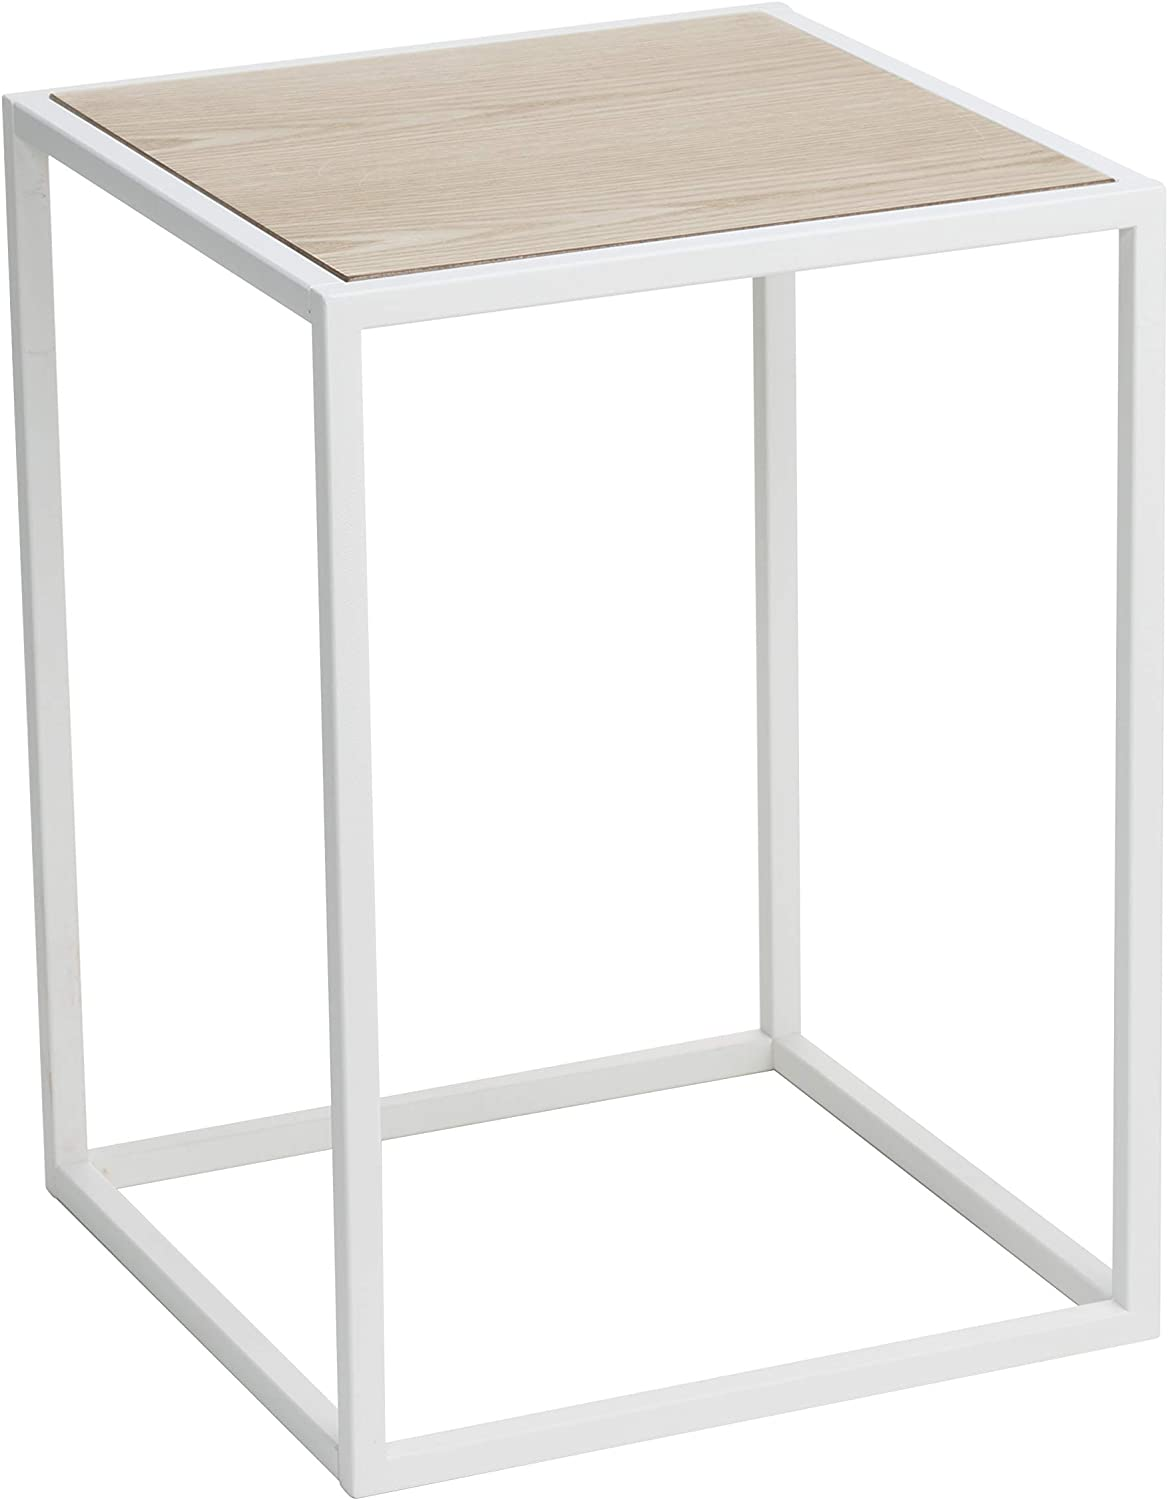 YAMAZAKI home Tower Square Coffee Table WH Space saving, One Size, White